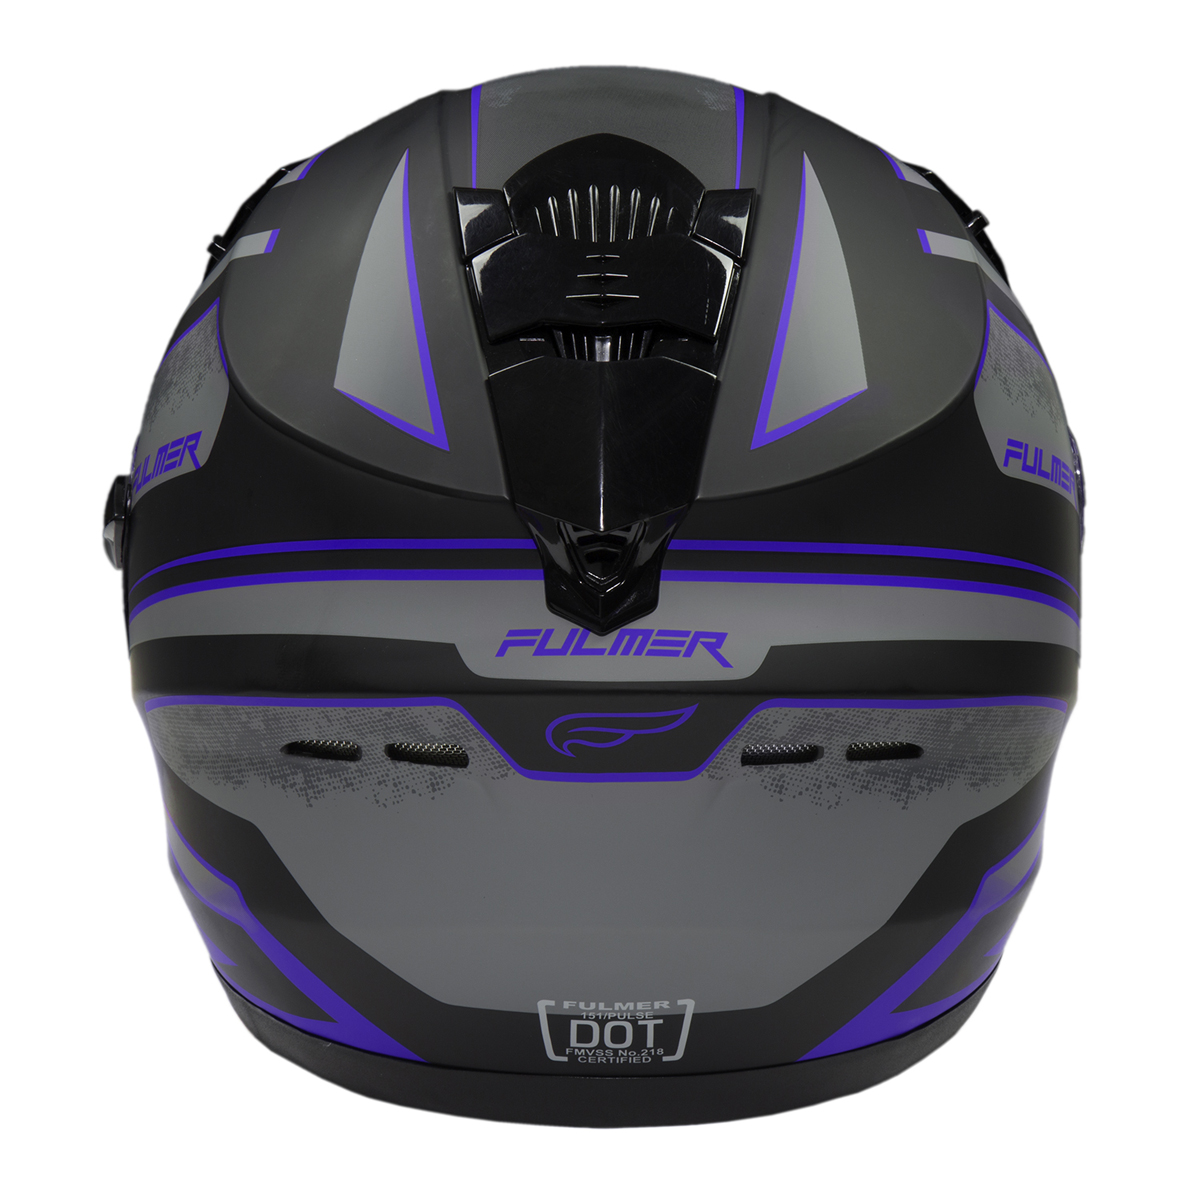 Fulmer-Adult-Full-Face-Motorcycle-Helmet-151-Pulse-DOT-Approved-Street-Bike thumbnail 9